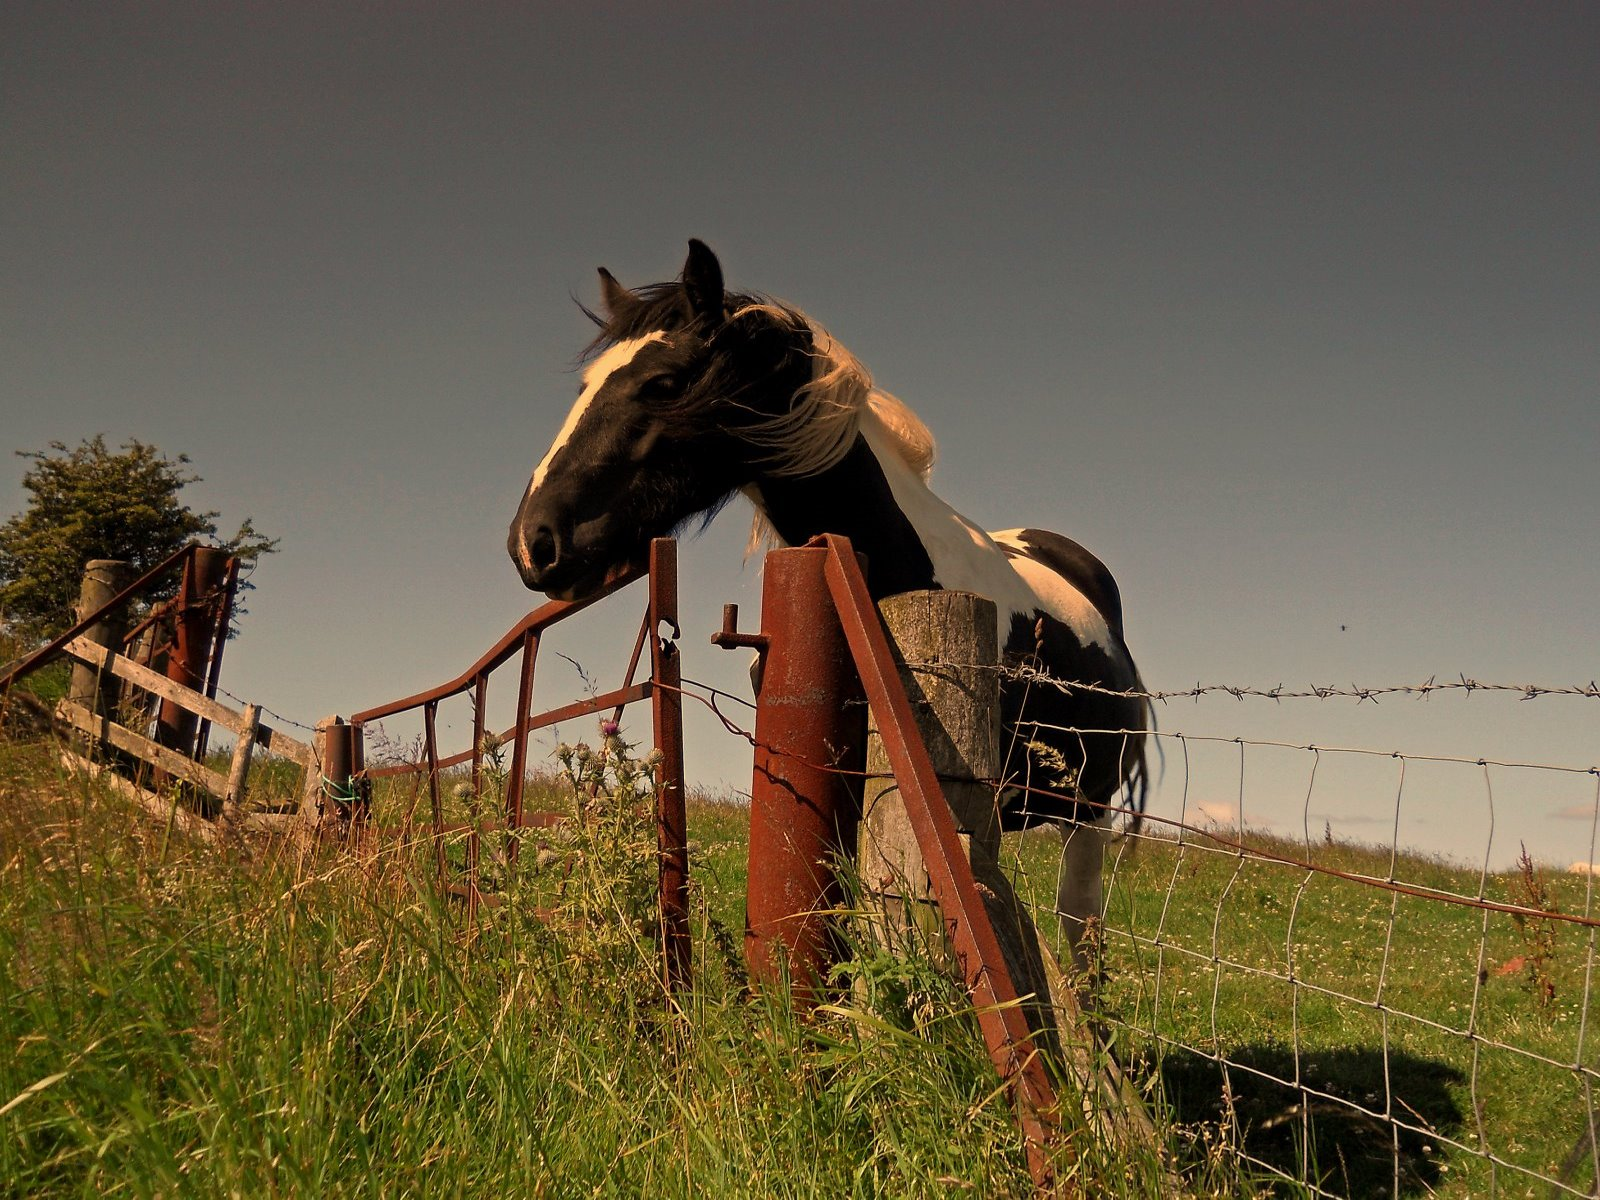 click to free download the wallpaper--Beautiful Image of Animals, a Tall Horse in Fences, Enjoying the Nature Scene 1600X1200 free wallpaper download